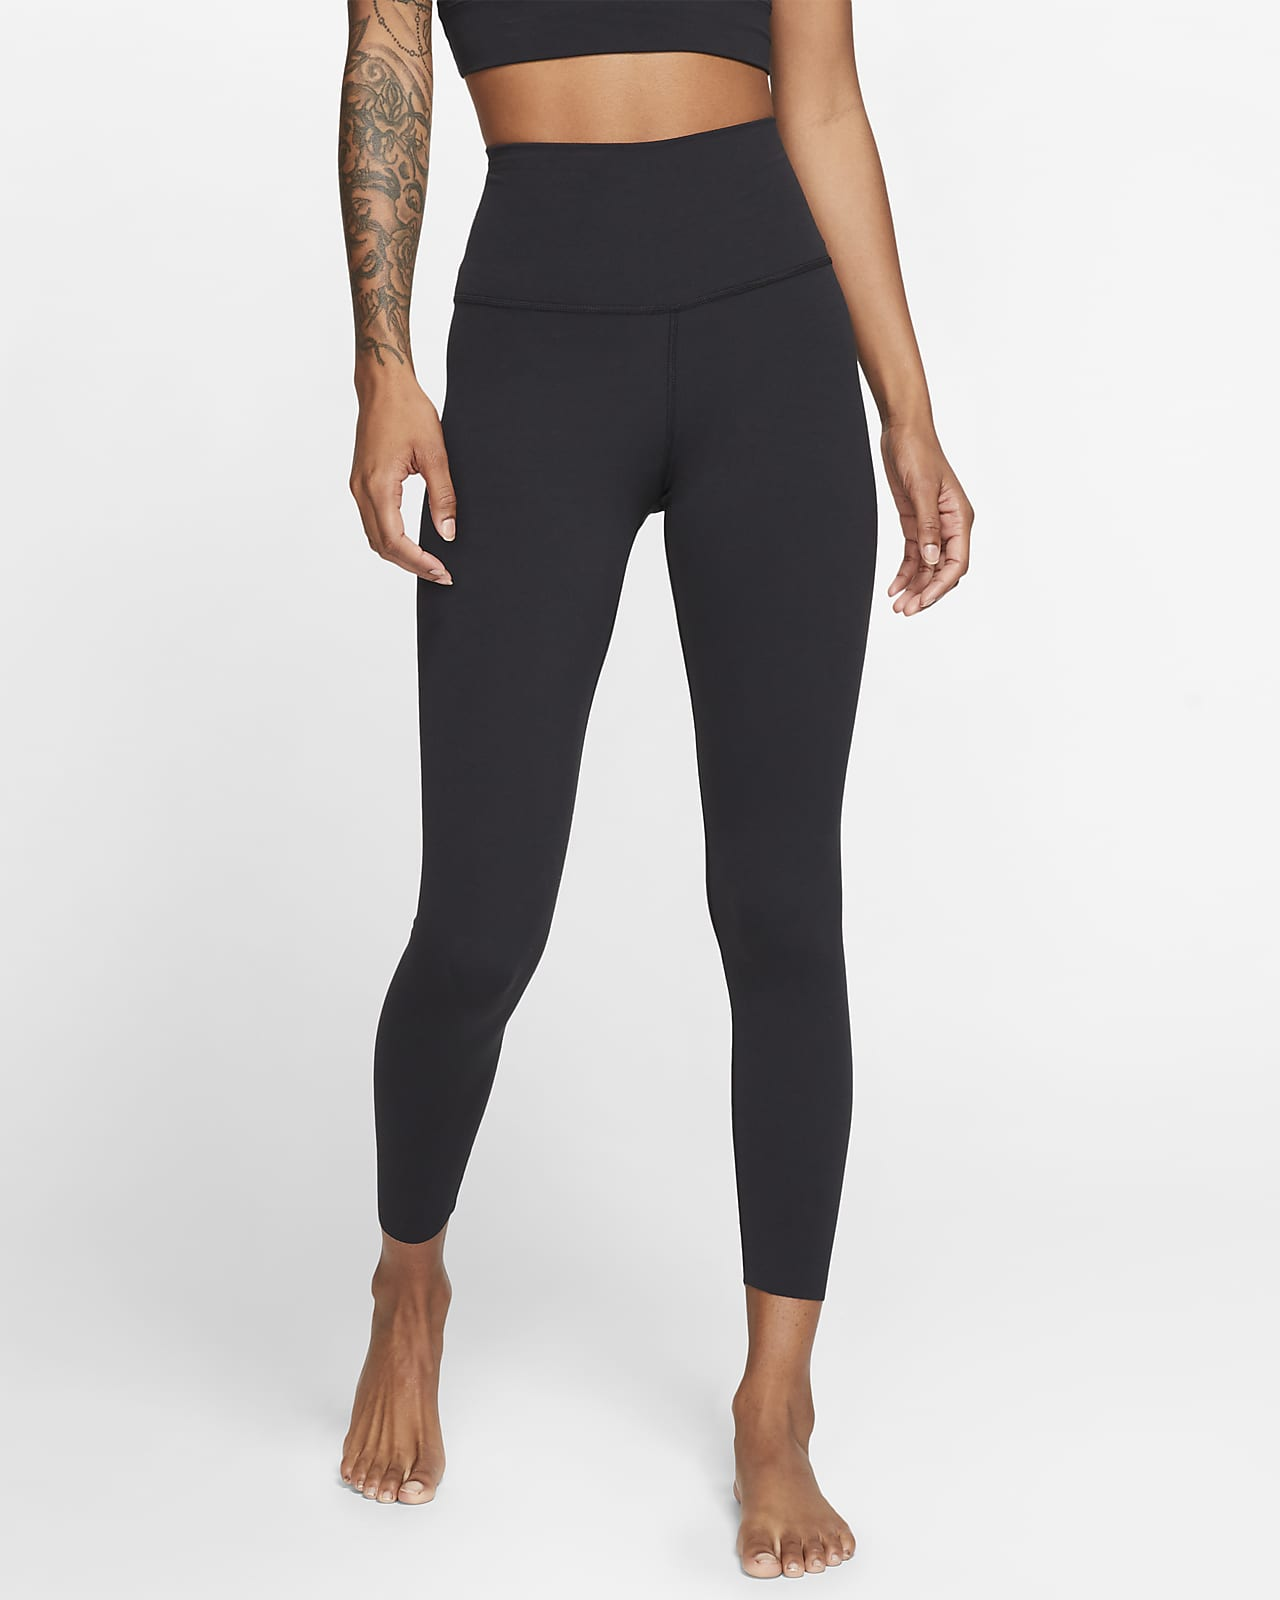 Nike Yoga Luxe Women's High-Waisted 7/8 Infinalon Leggings